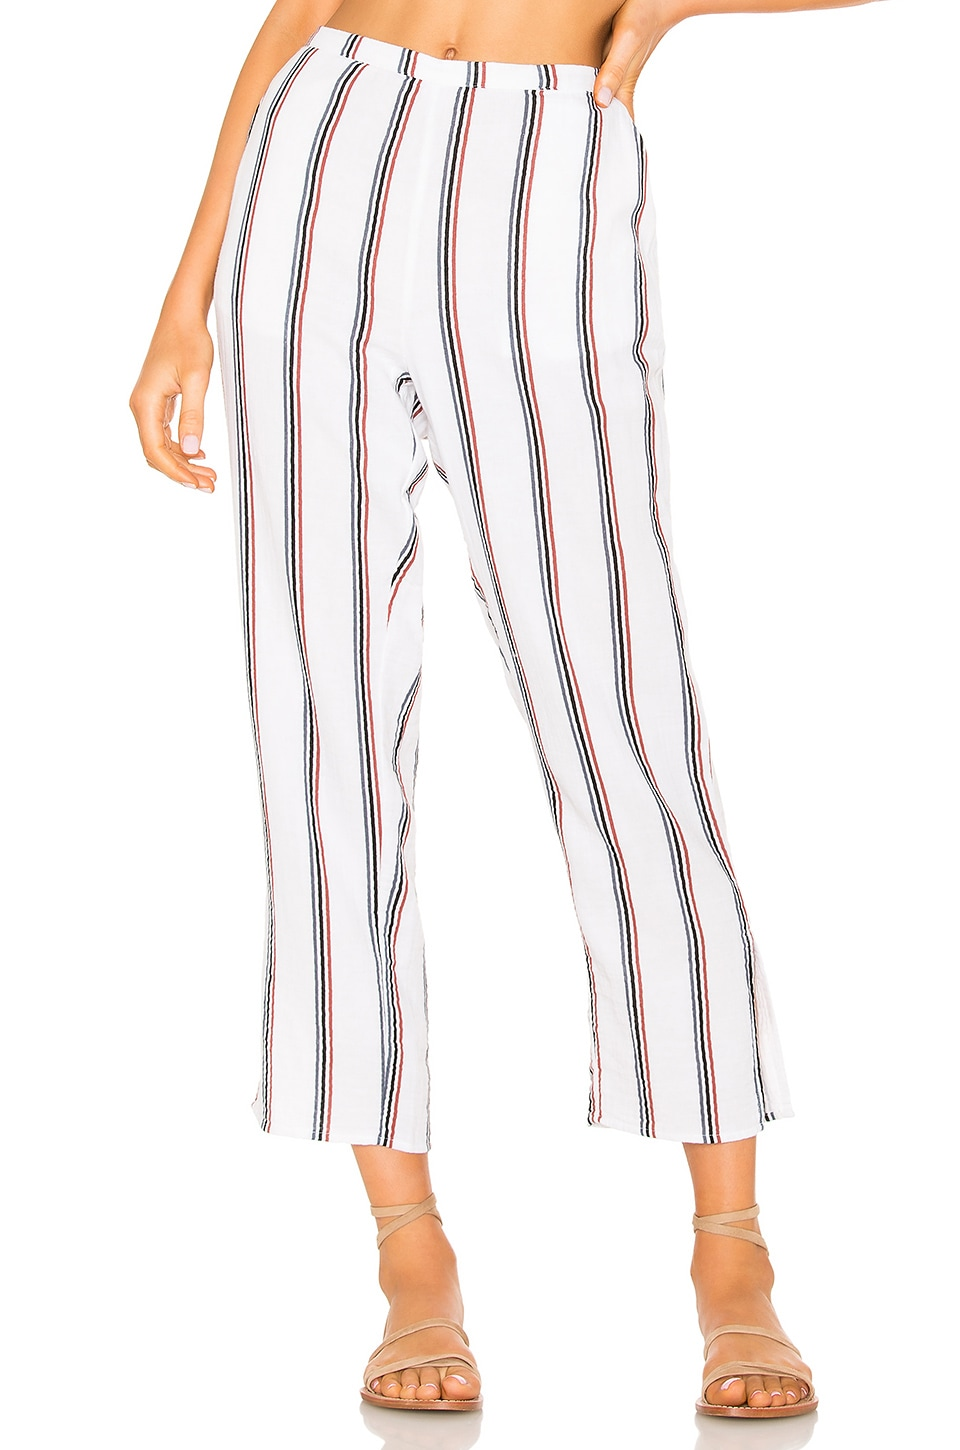 TAVIK Swimwear Calder Pant in White Stripe